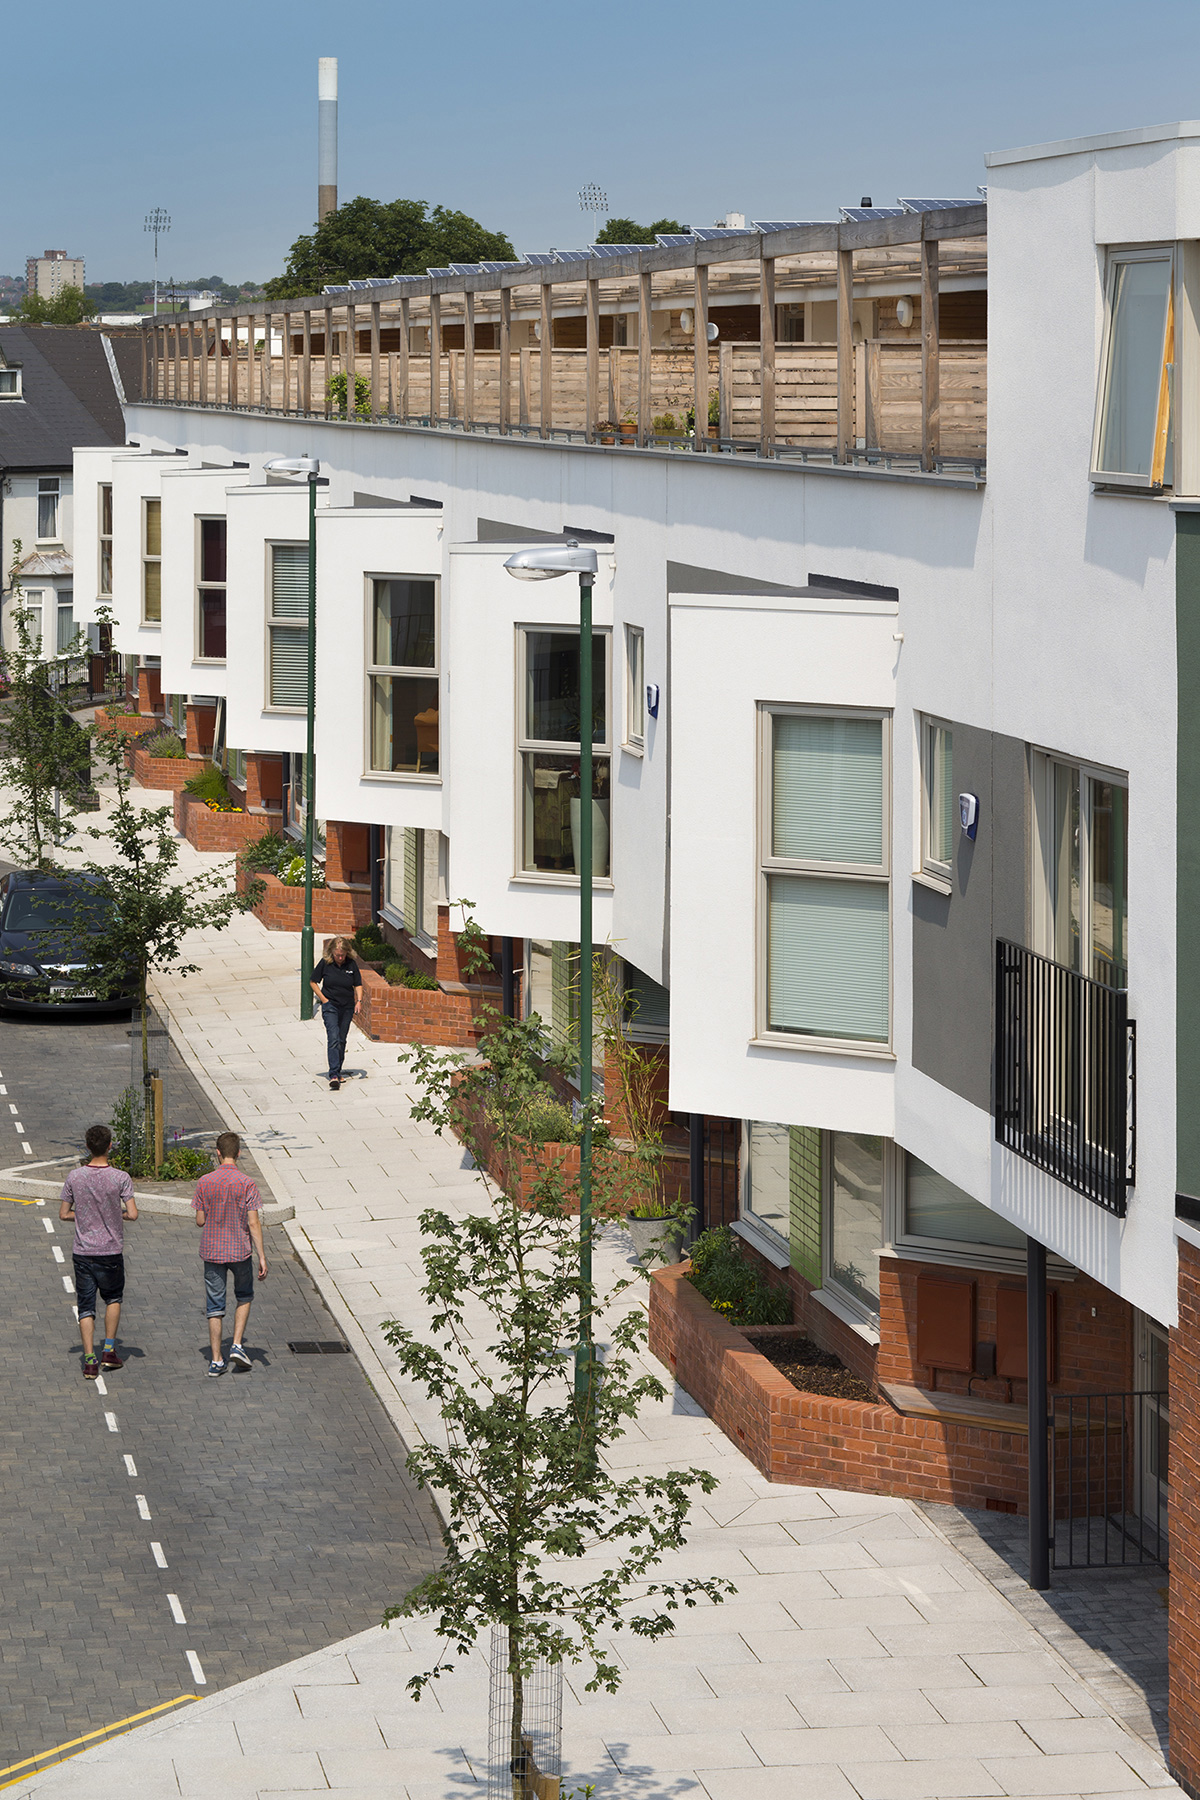 The_Meadows_housing_Nottingham_04